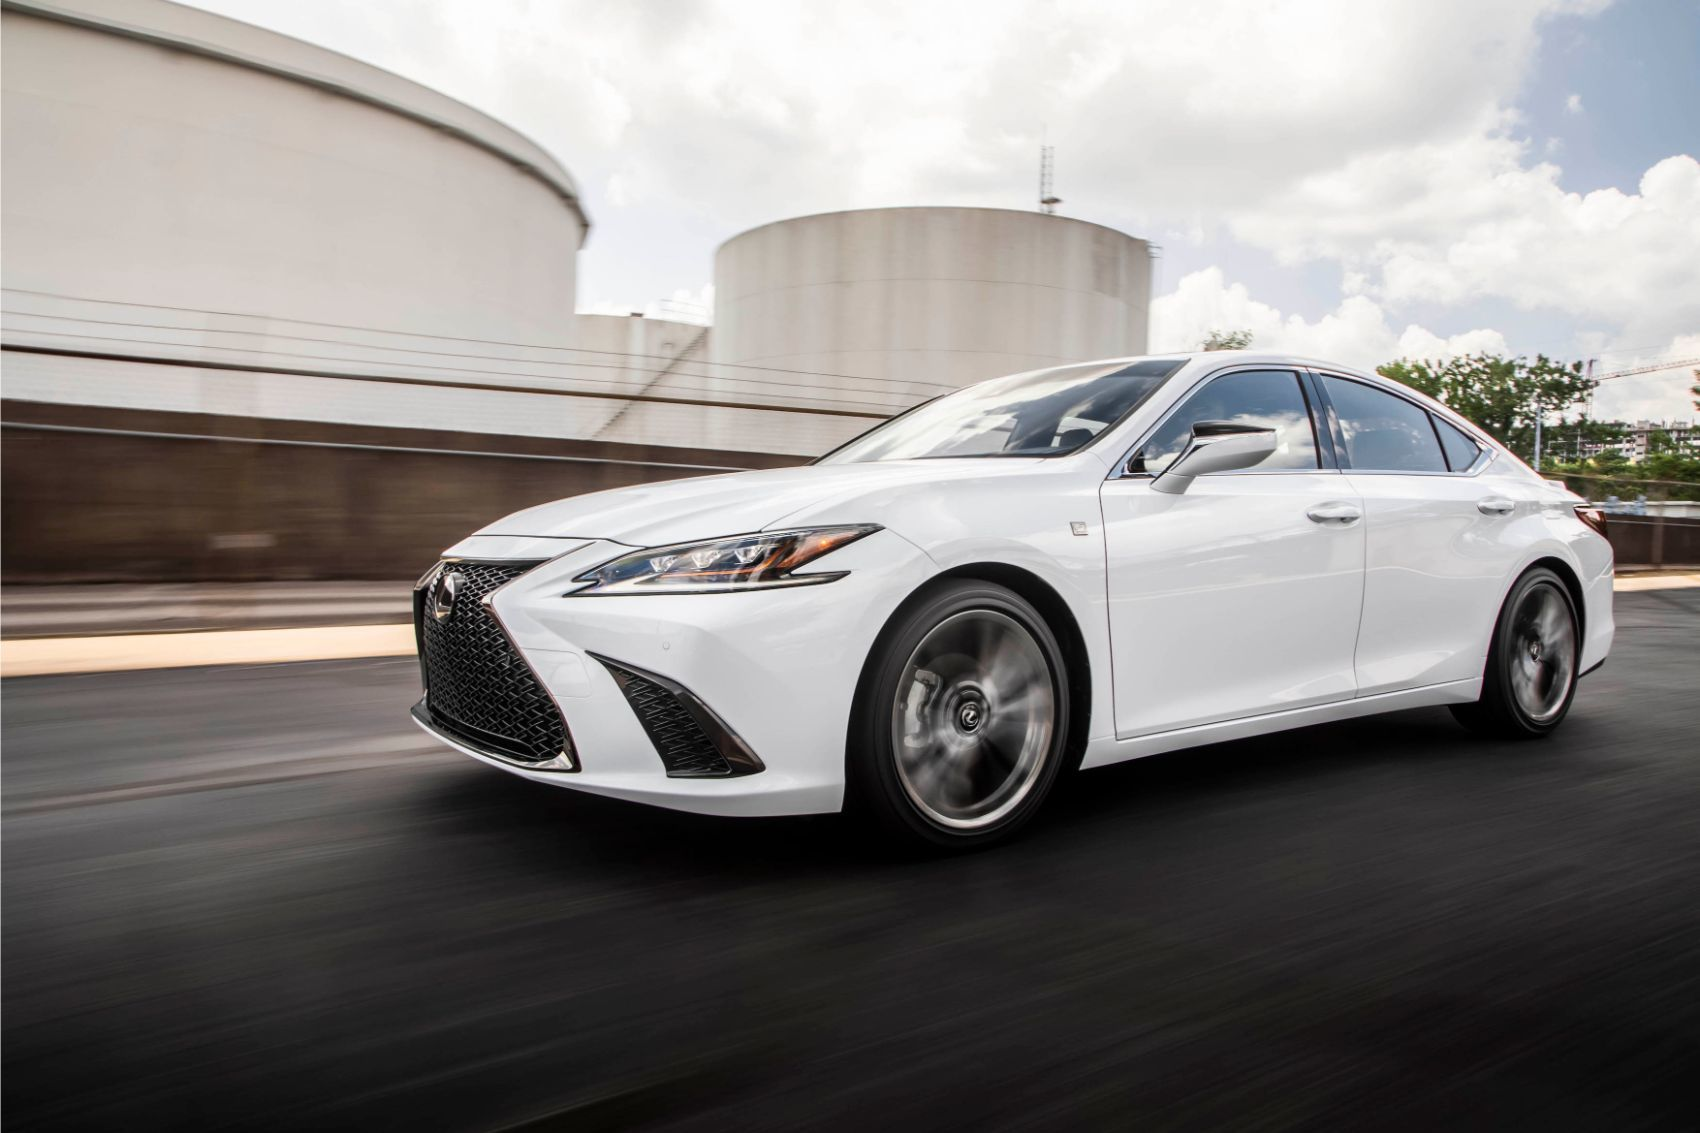 2019 Lexus ES 350 F Sport Review: Well-Balanced For The Daily Drive 15